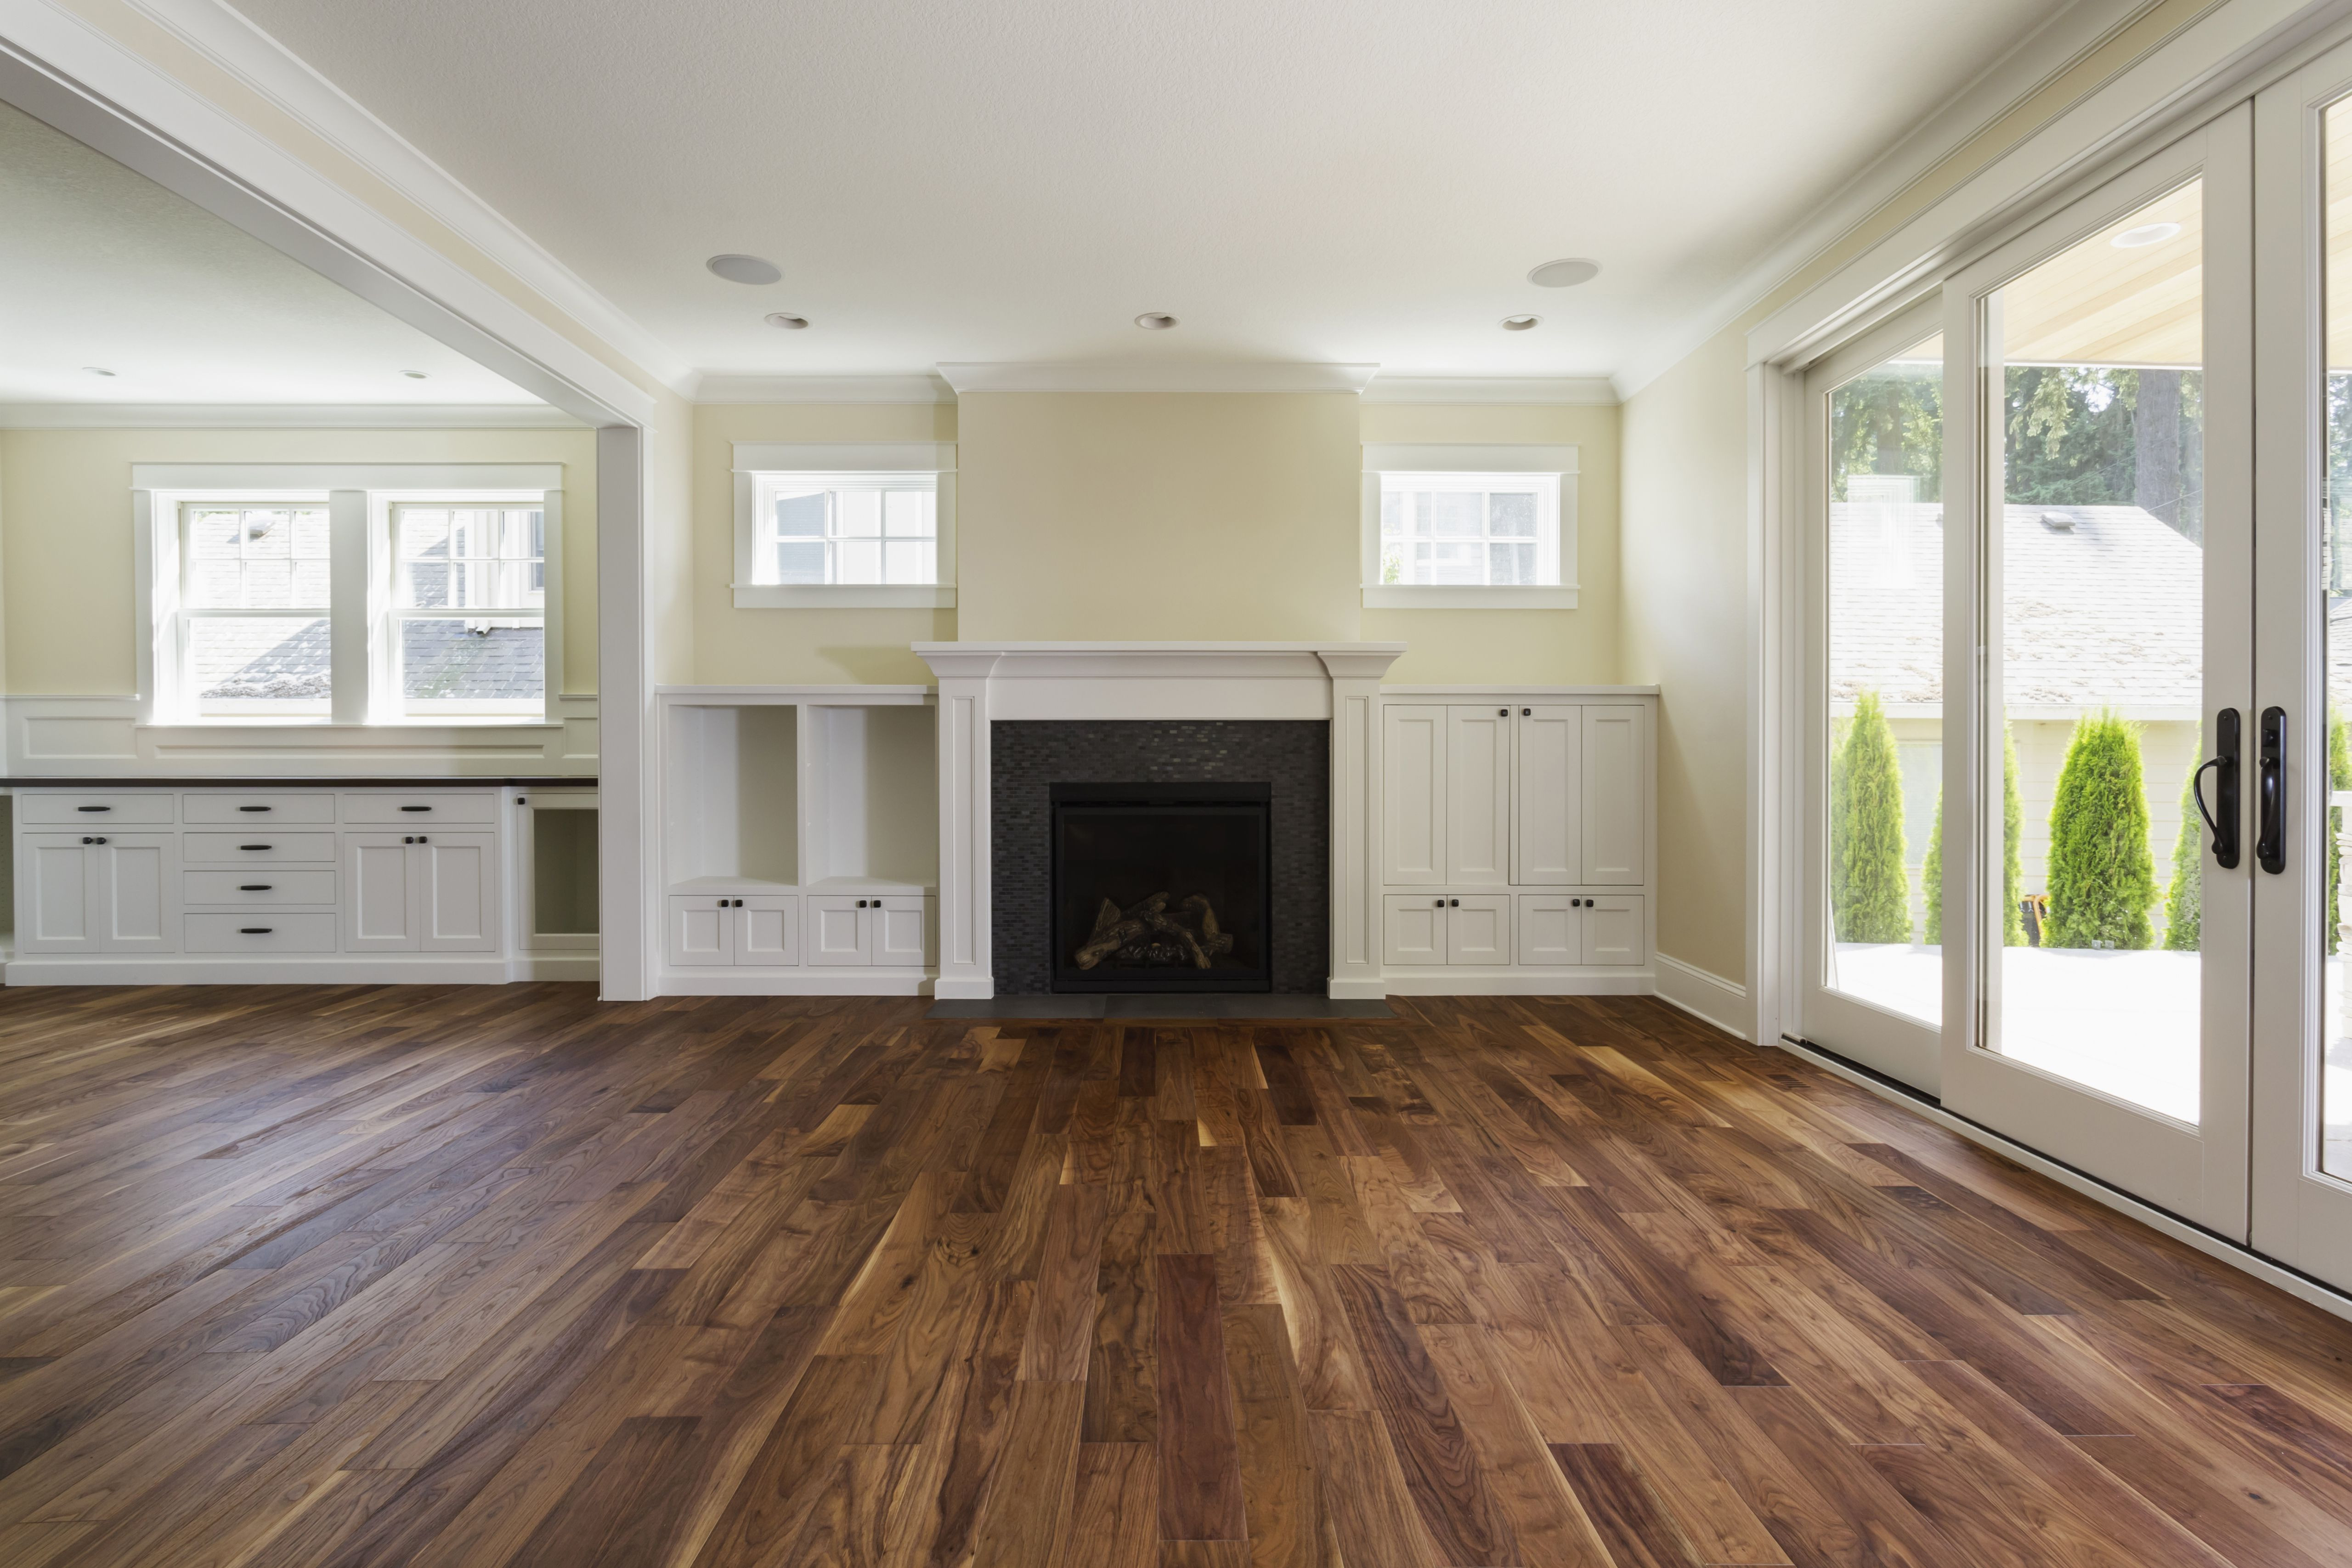 wood filler for hardwood floor repair of the pros and cons of prefinished hardwood flooring for fireplace and built in shelves in living room 482143011 57bef8e33df78cc16e035397